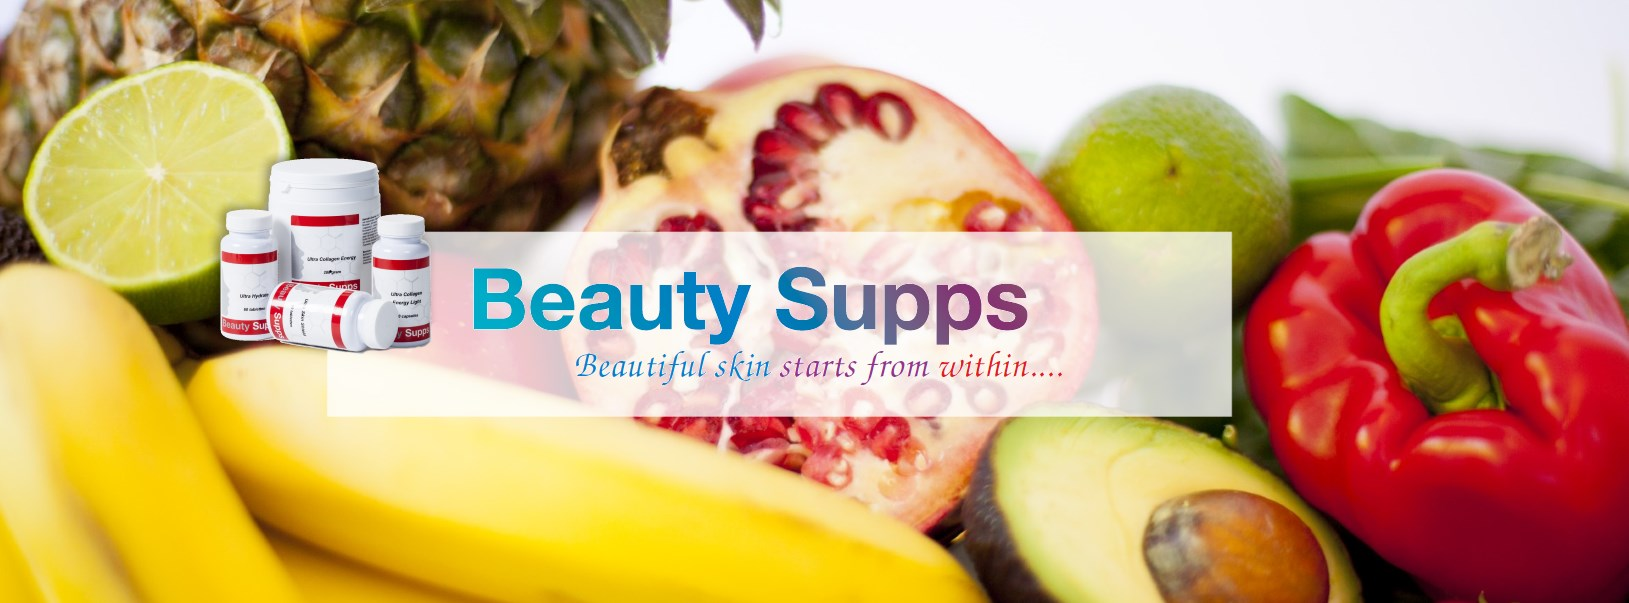 Beauty Supps